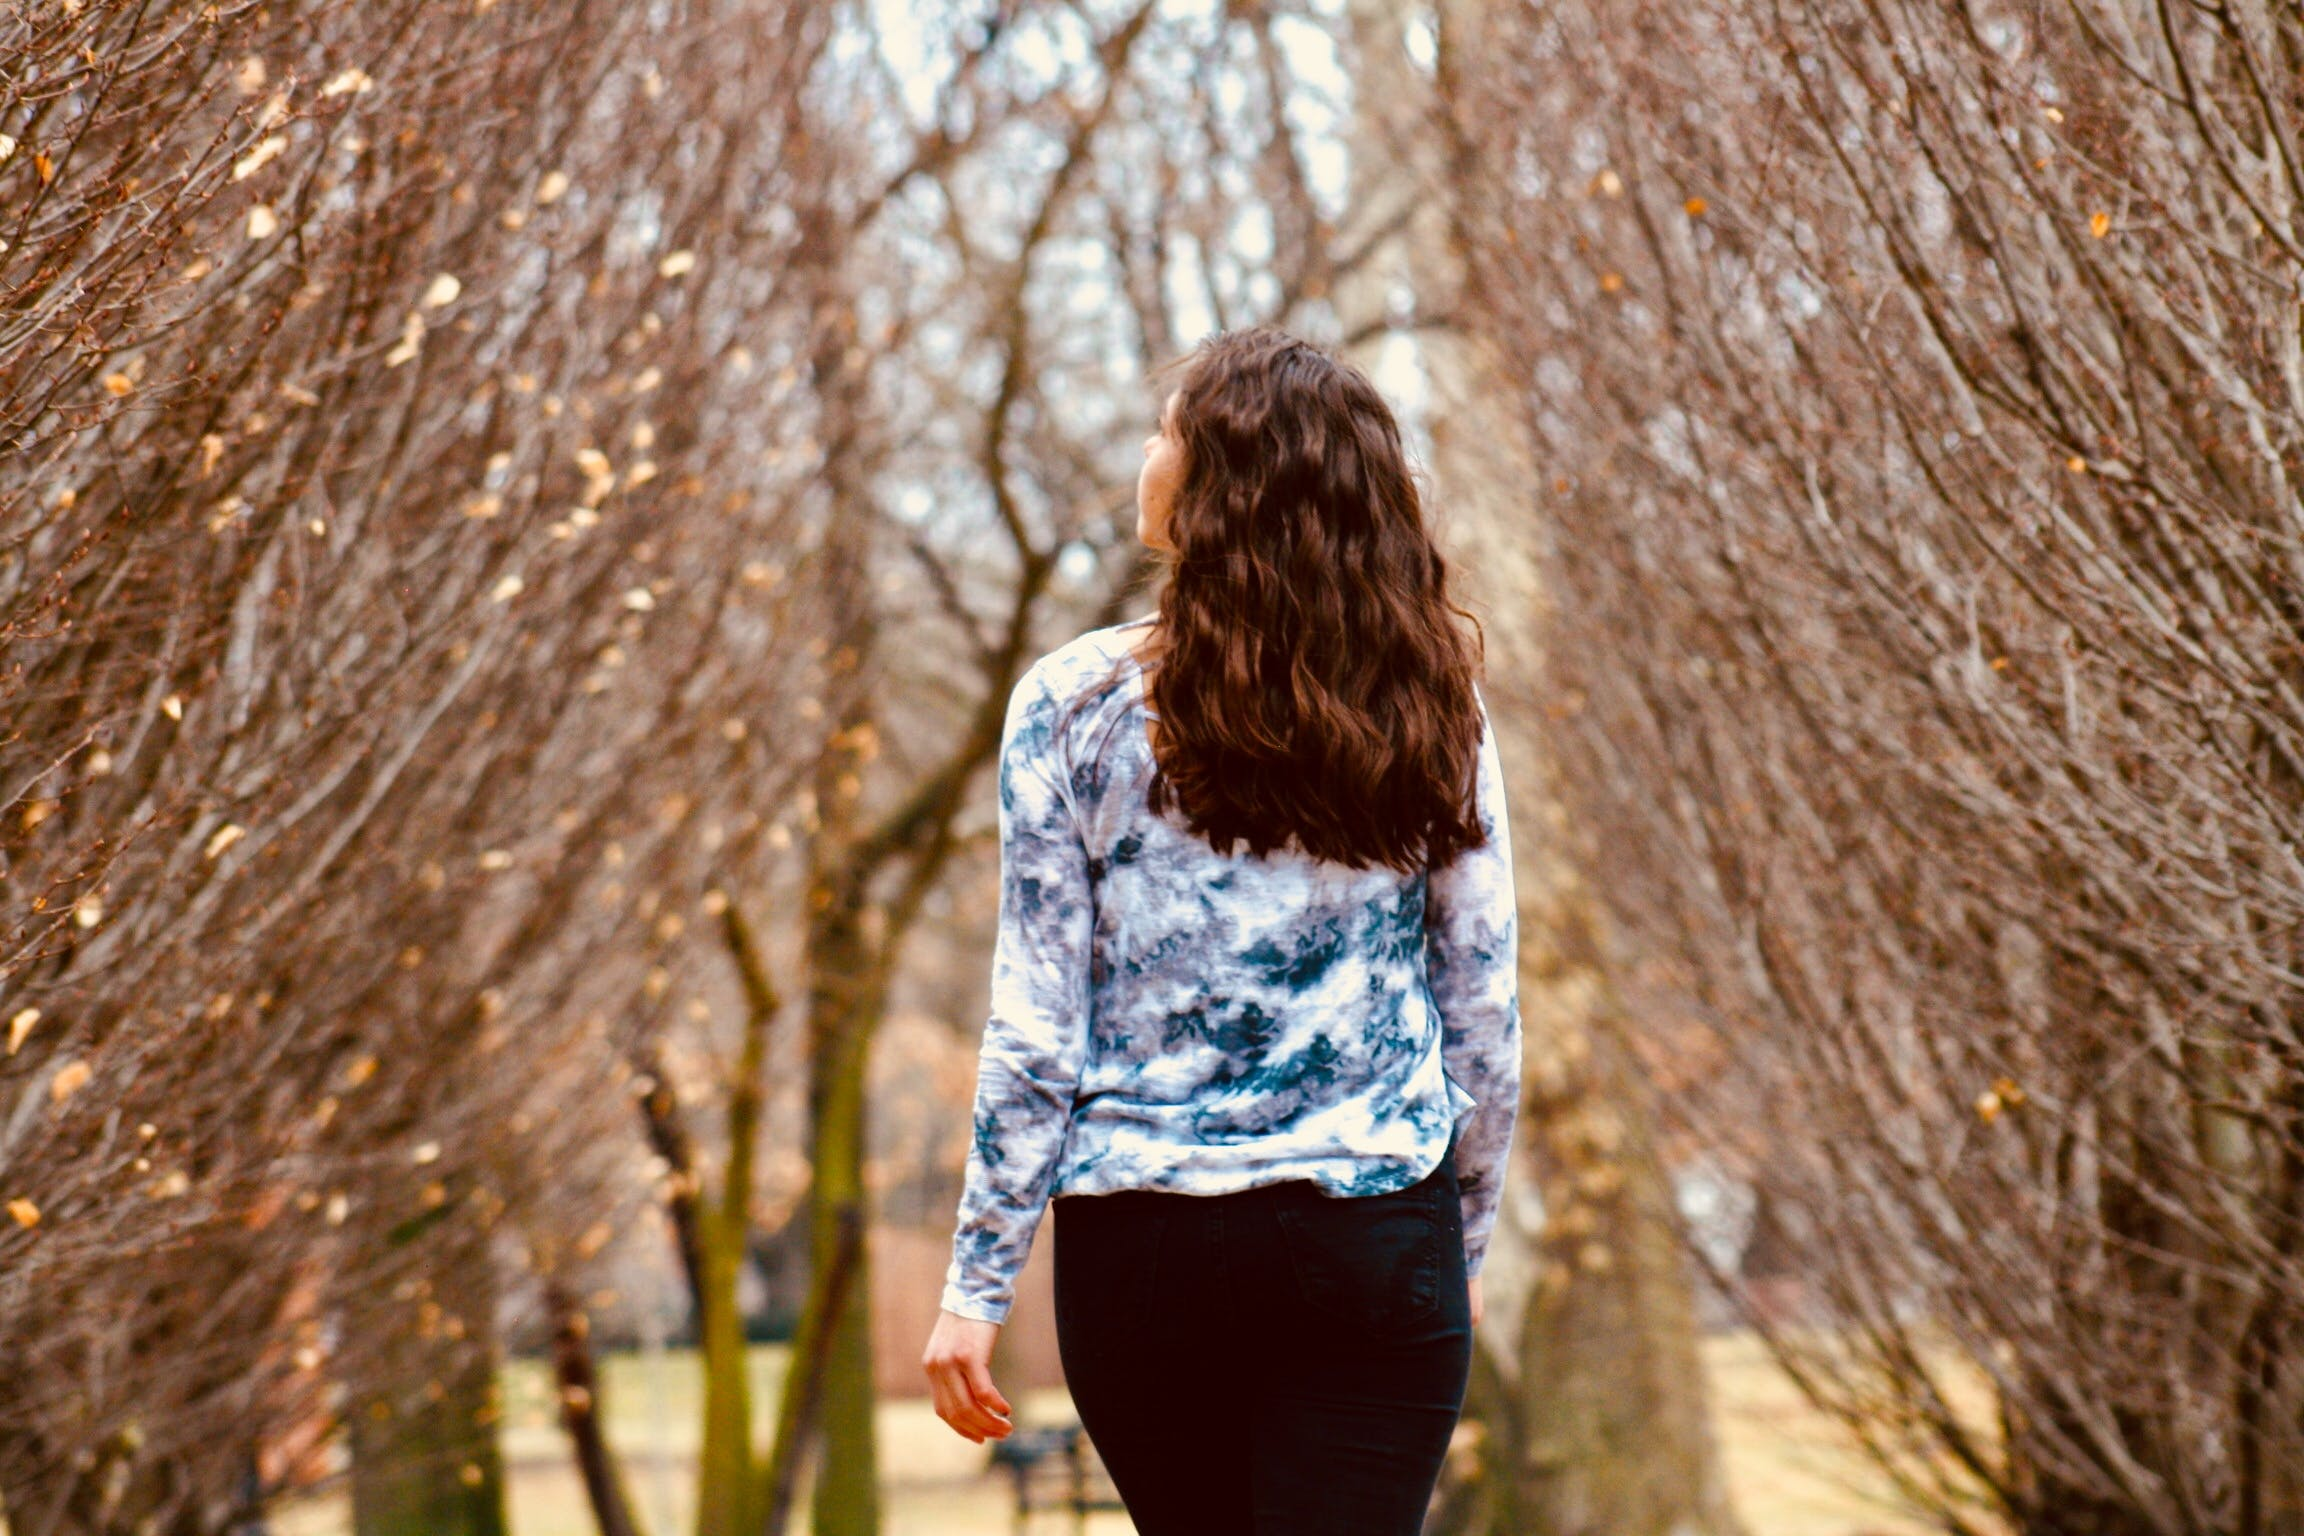 Woman in Blue and White Long-sleeved Shirt Walking Along Leafless Tree